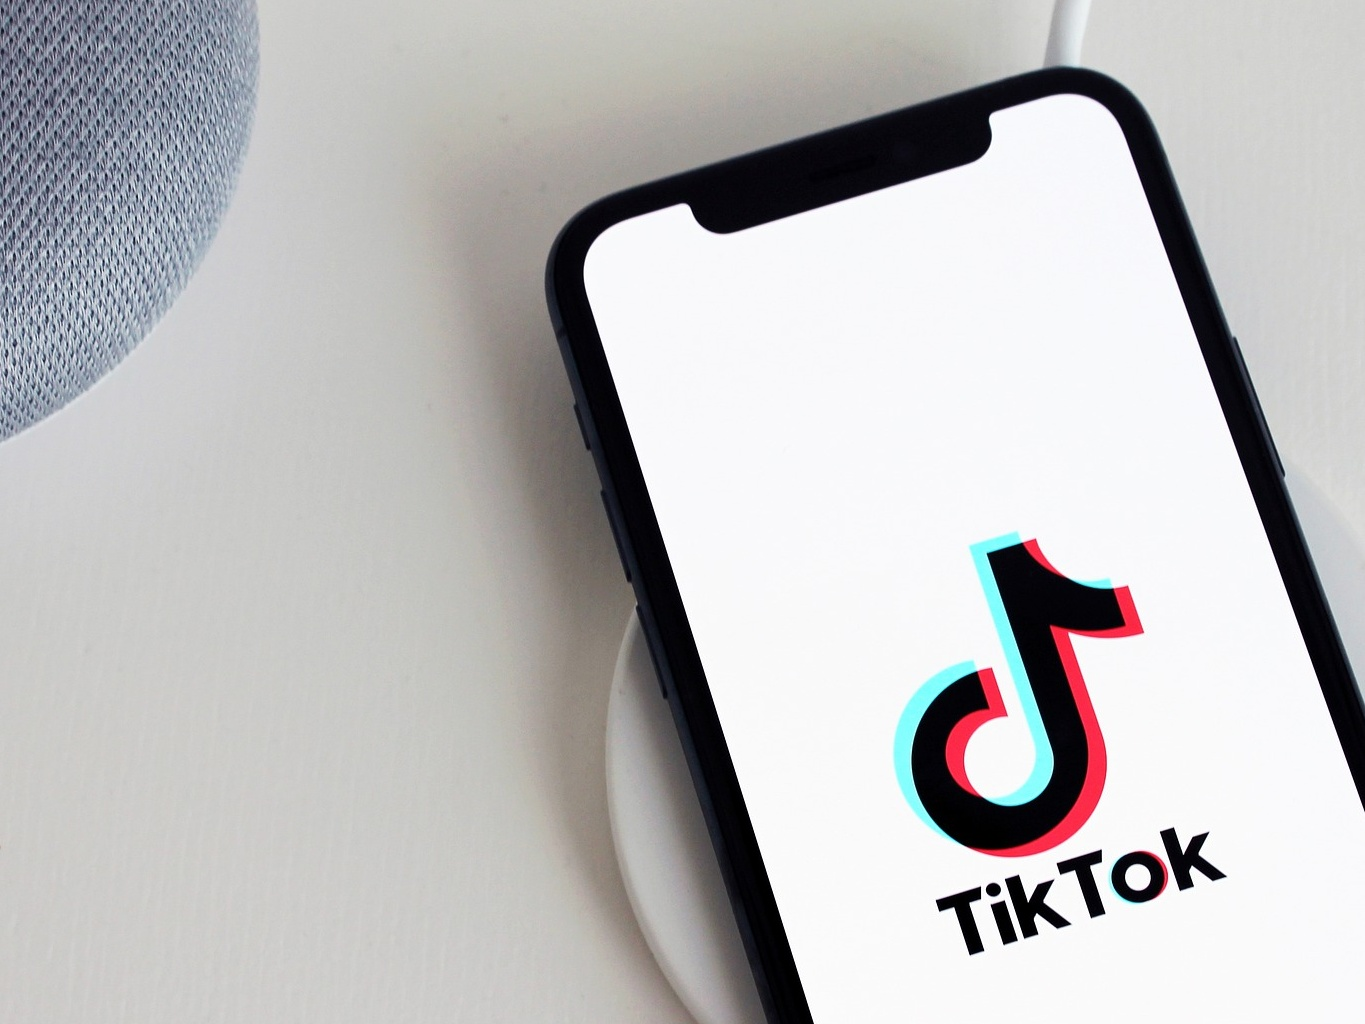 TikTok in the phone. Image credit: Antonbe/Pixabay